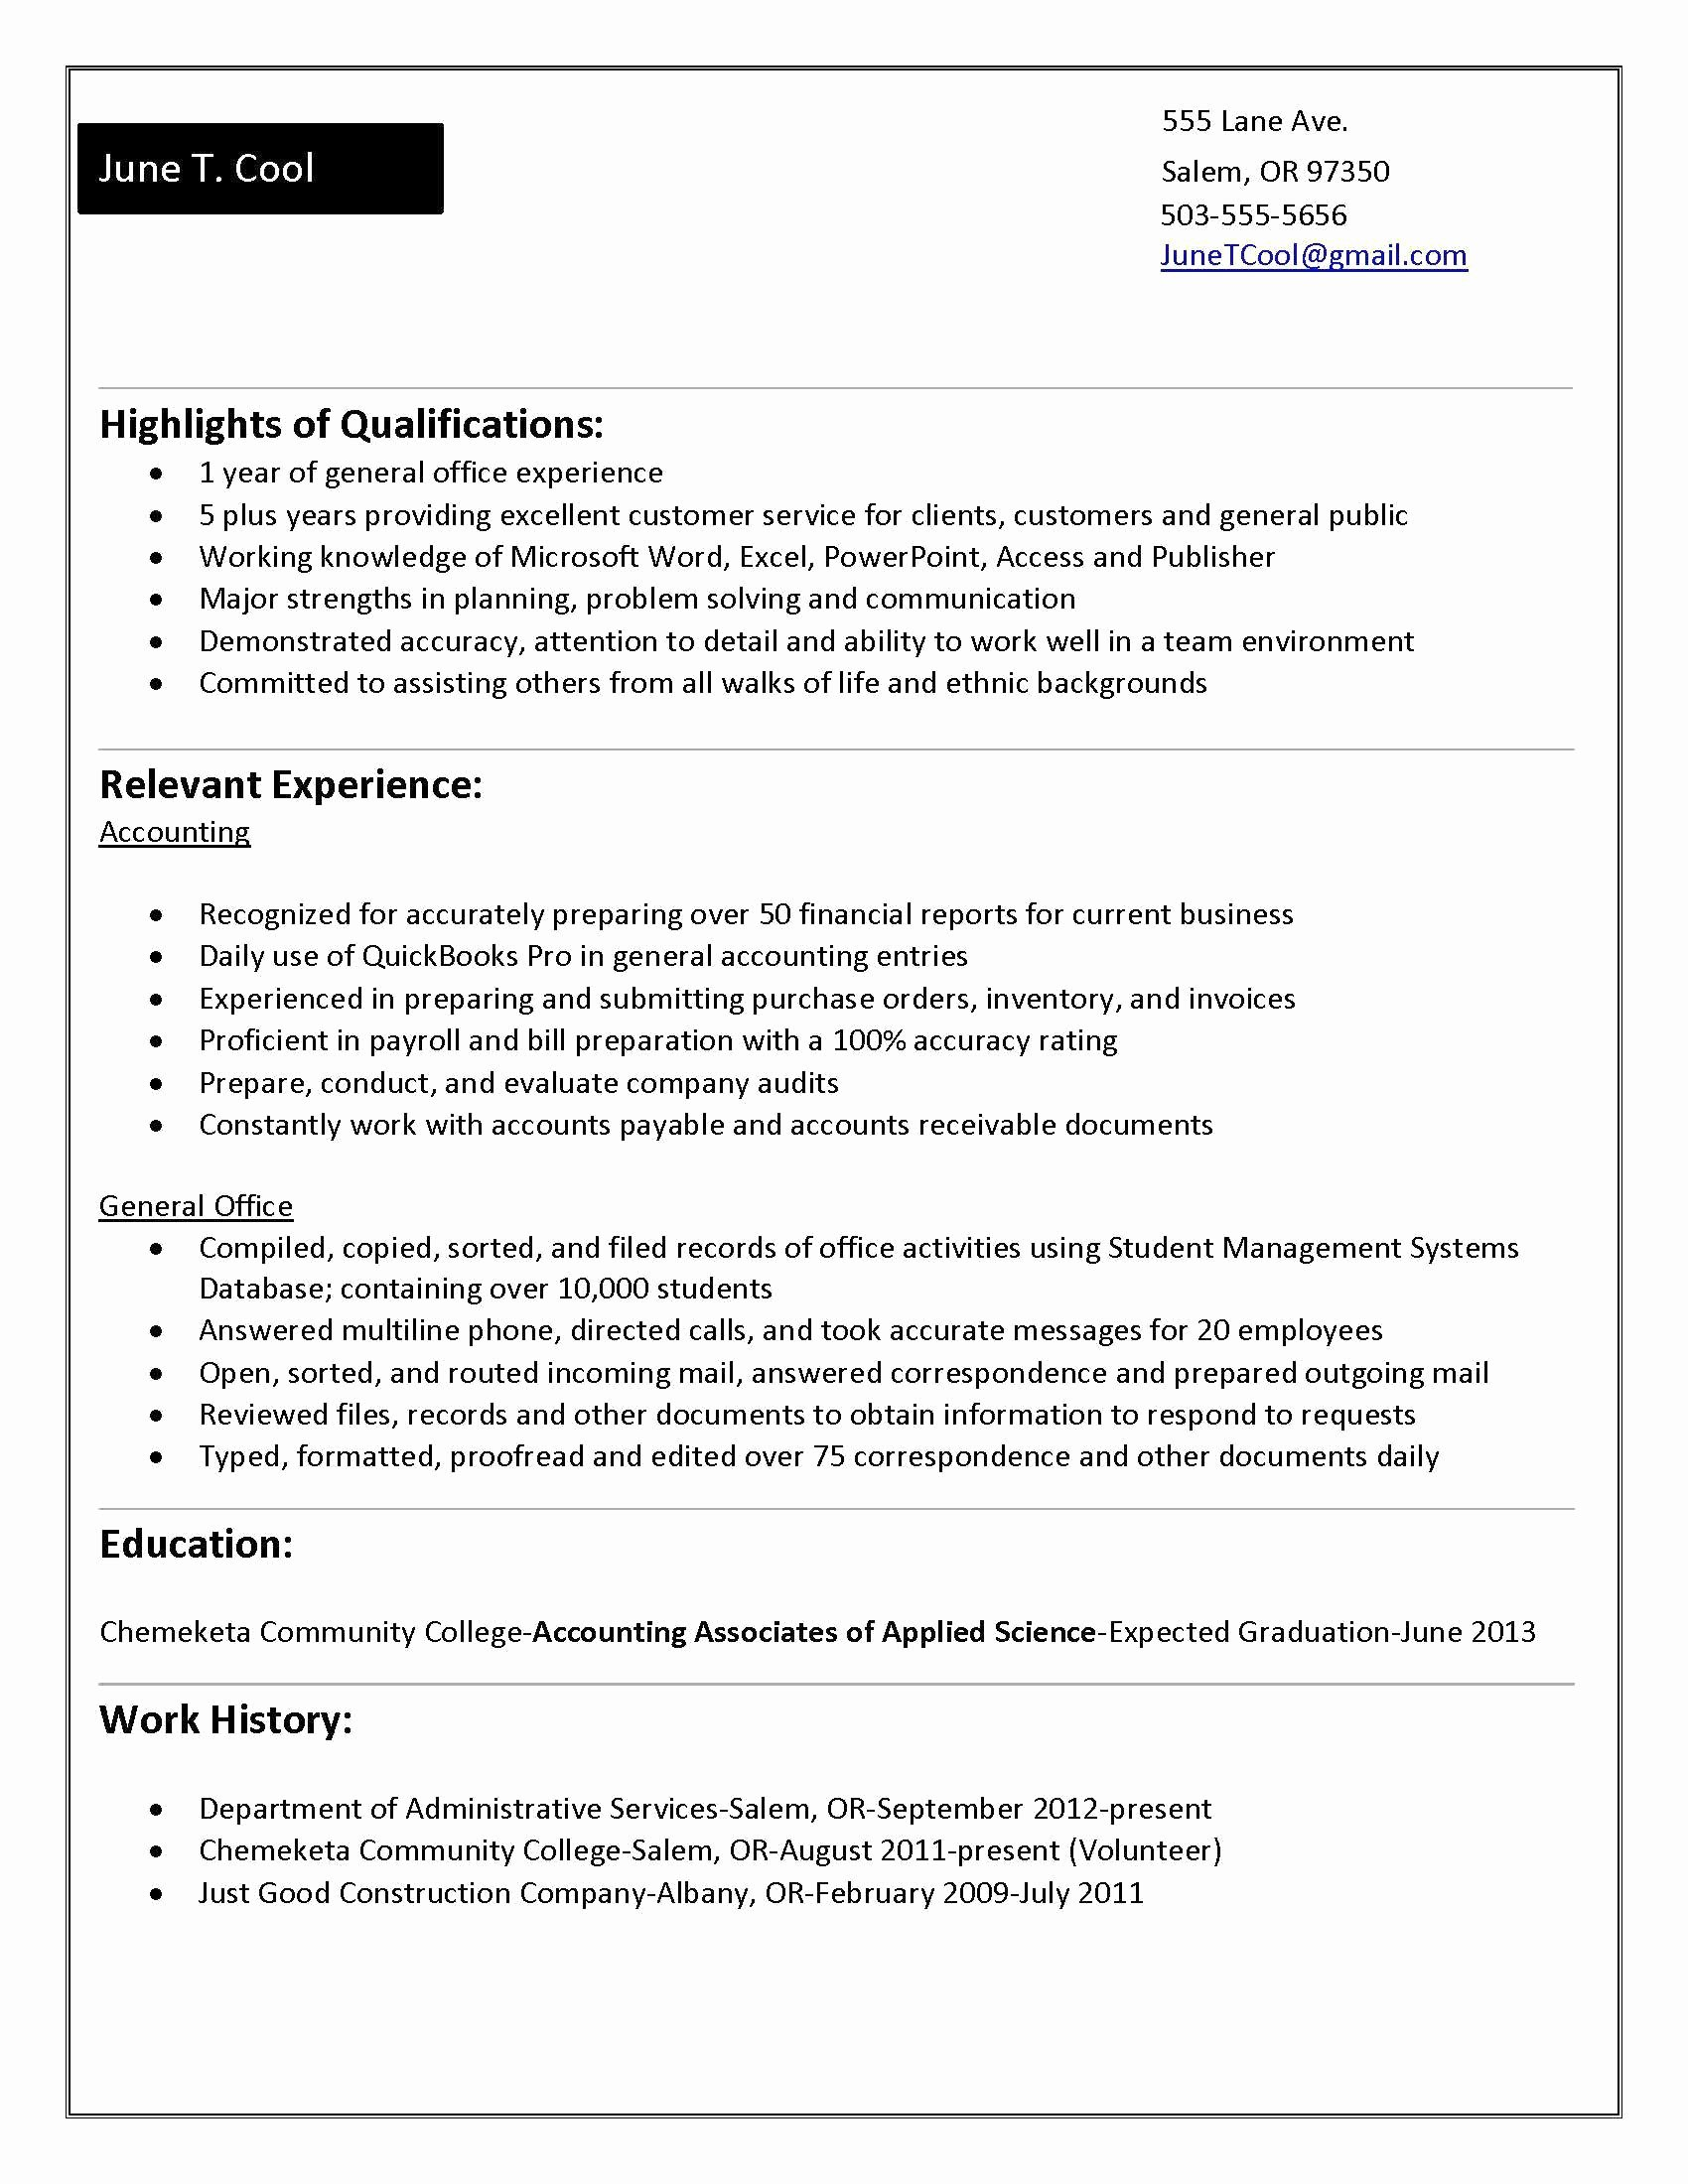 10 Years Experience Resume format Fresh for 5 Years Experience In Accounting